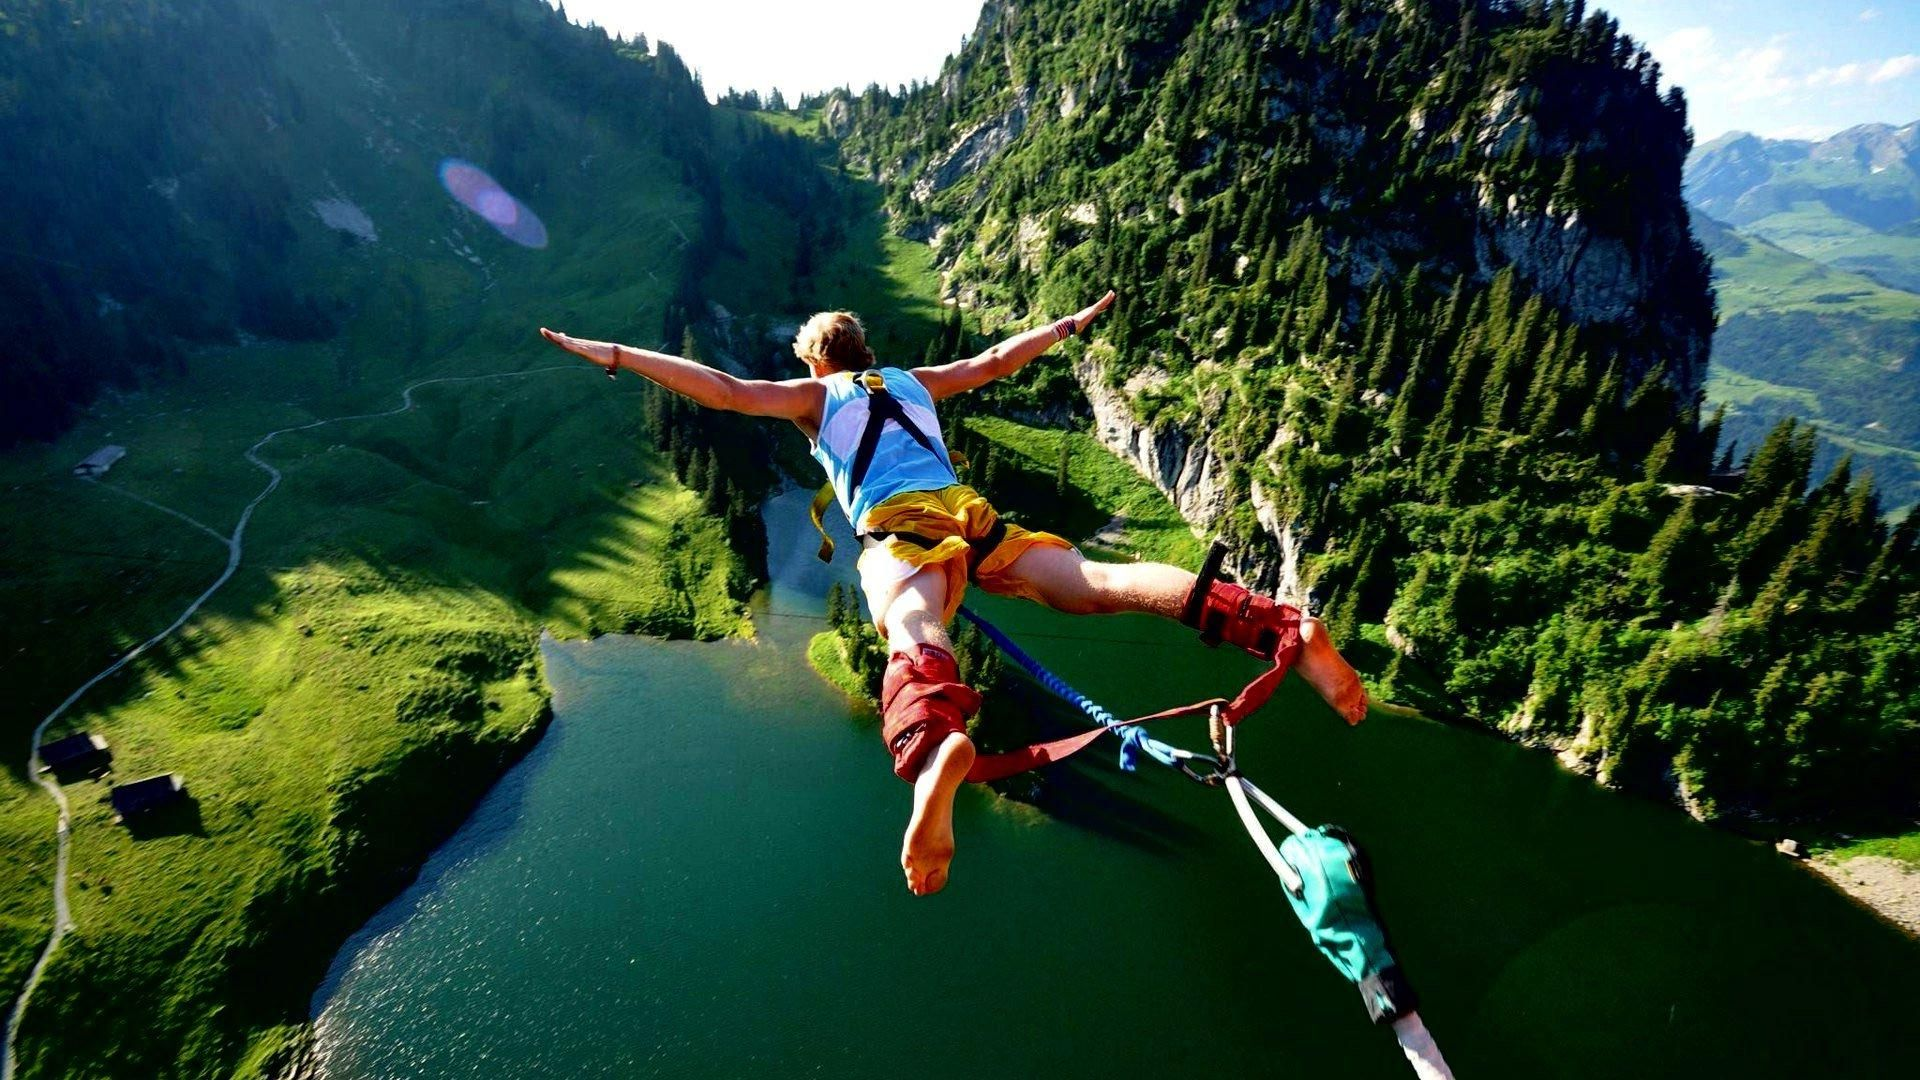 Extreme Sports - Bungee Jumping Extreme Sports | Extreme ...